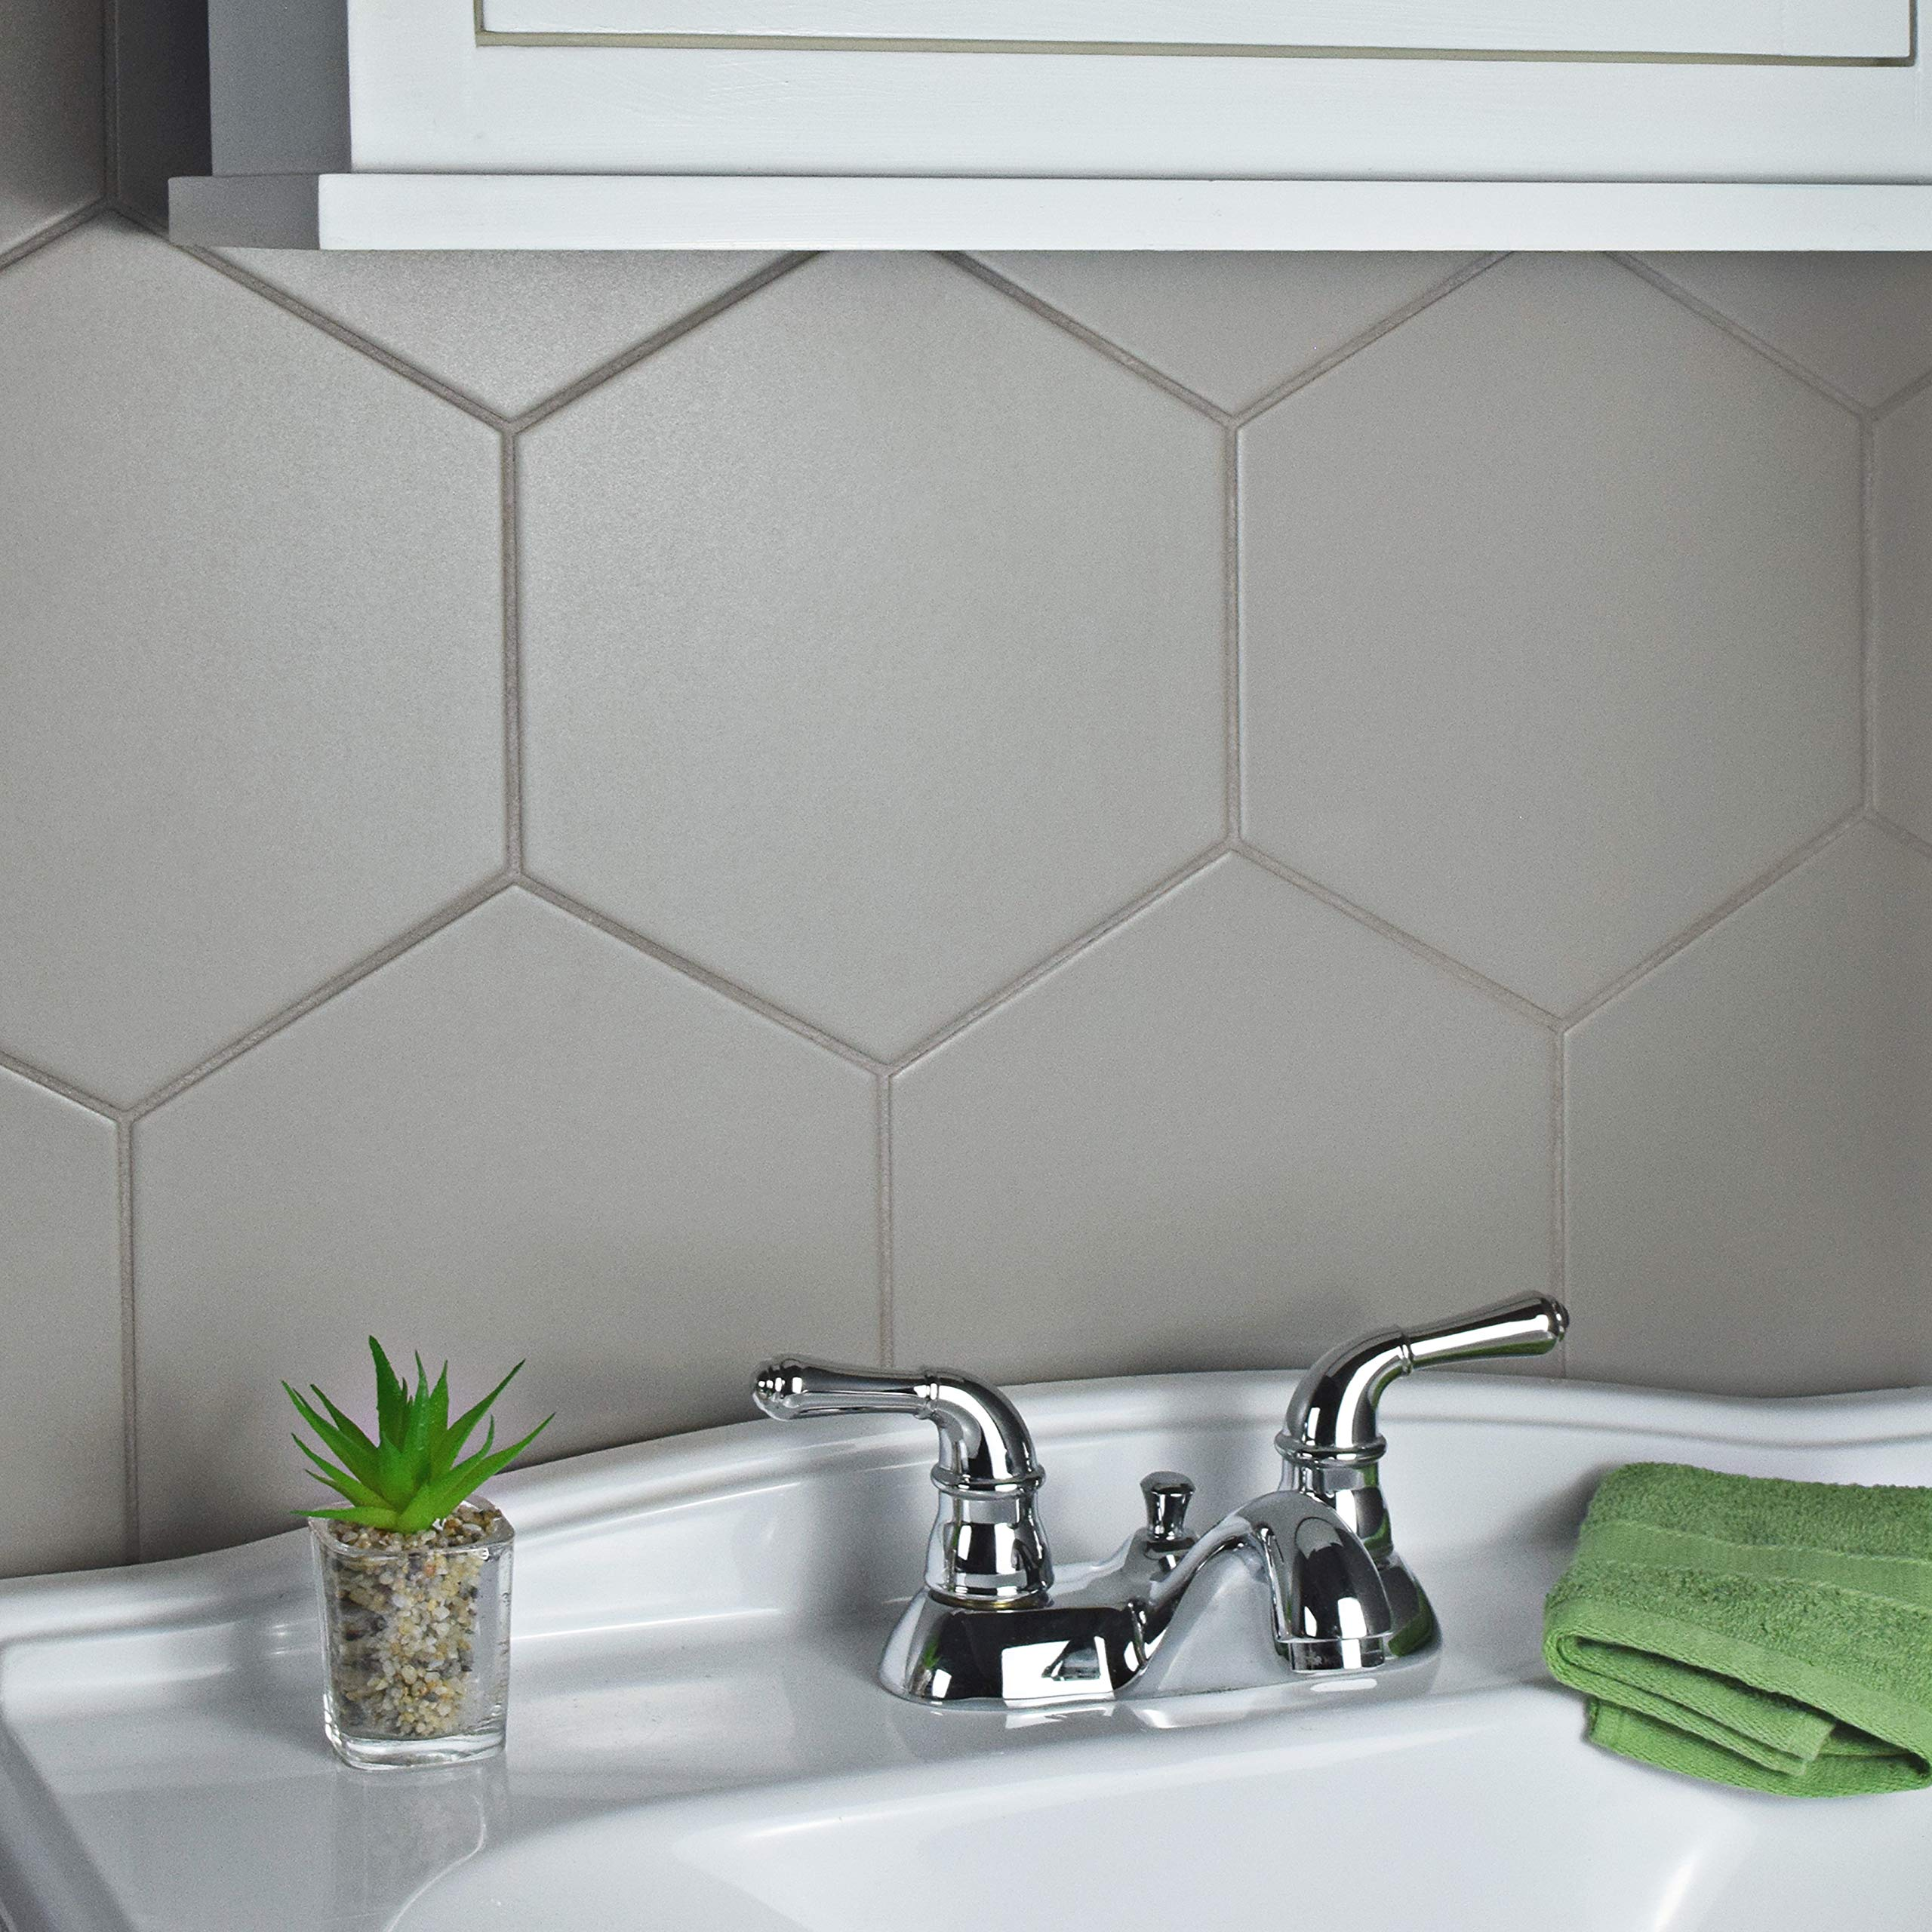 SomerTile FCD10STX Abrique Hex Porcelain Floor and Wall, 8.63'' x 9.88'', Silver Tile 8.625'' x 9.875'' 25 Piece by SOMERTILE (Image #9)